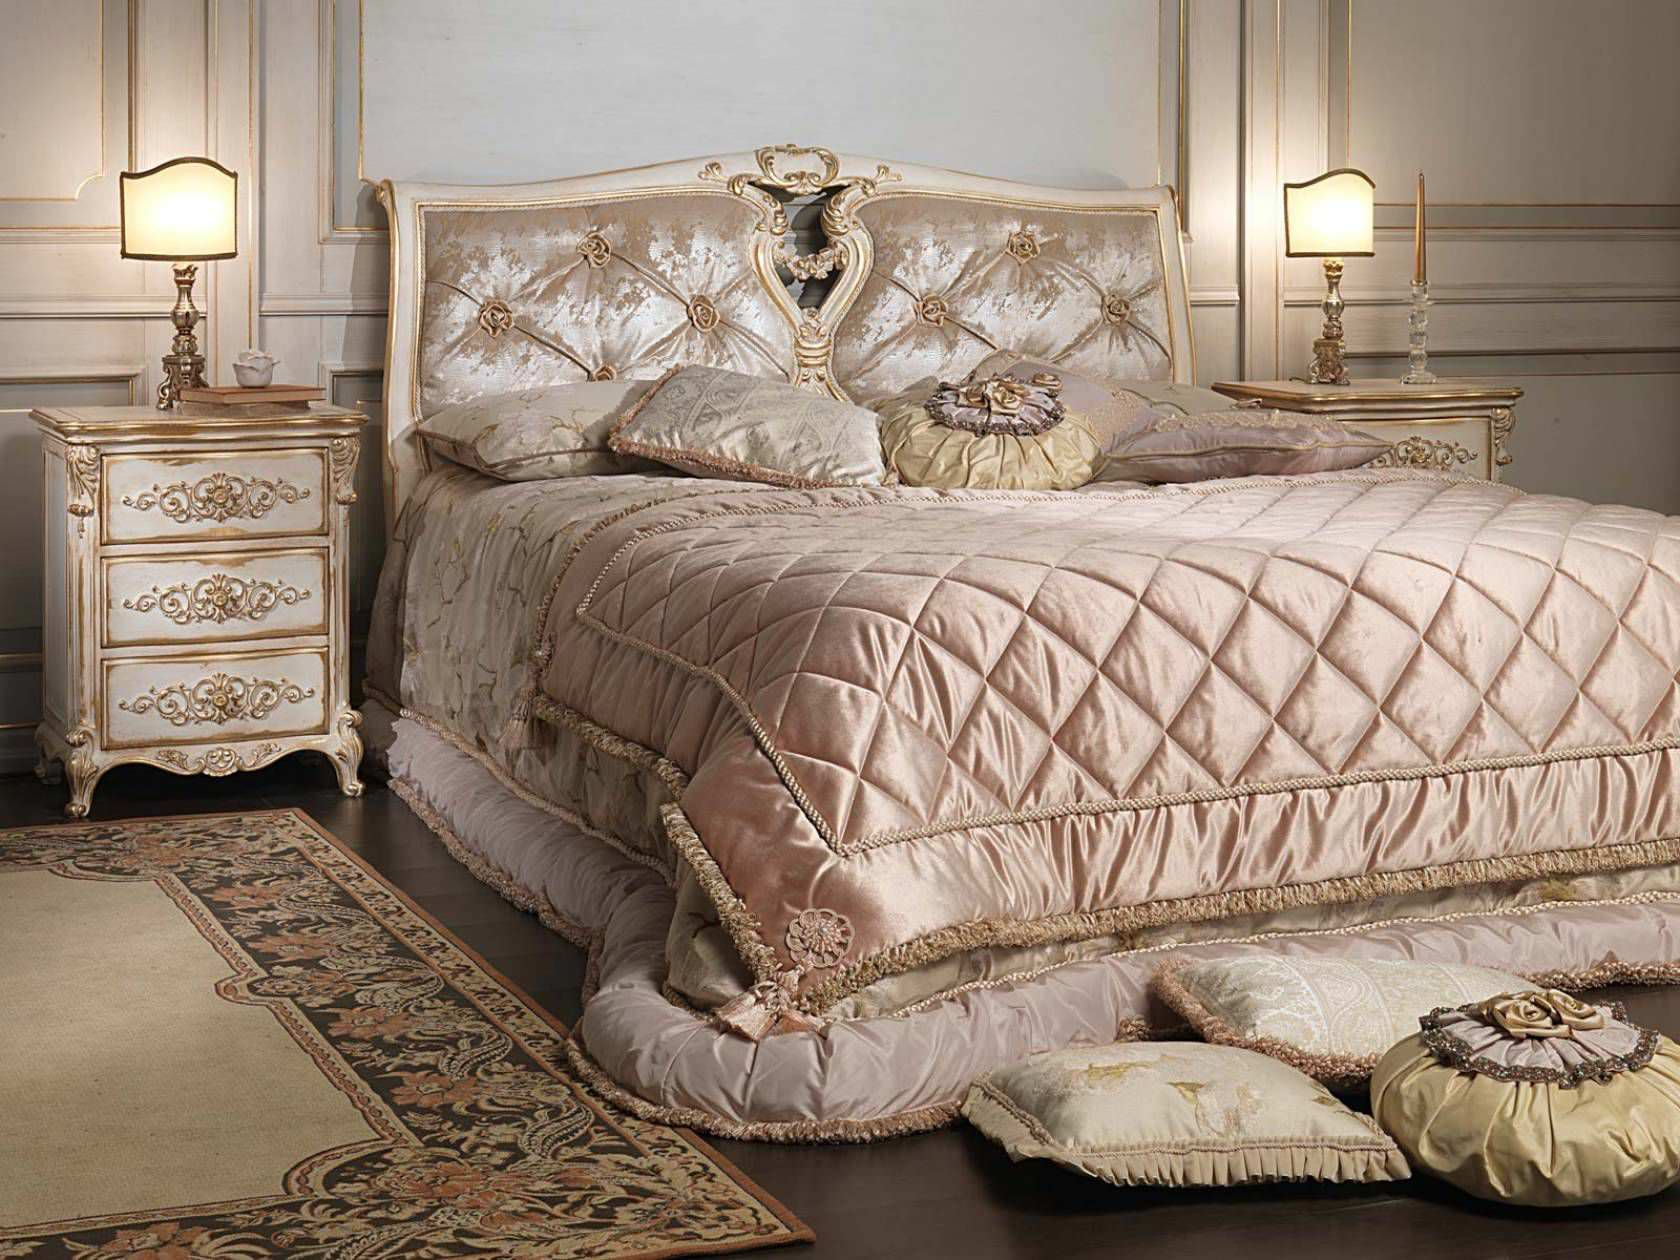 Double bed   Louis XVI style   wooden WHITE AND GOLD VIMERCATI MEDA  LUXURY CLASSIC FURNITURE  Double bed   Louis XVI style   wooden   WHITE AND GOLD   VIMERCATI  . Louis Xvi Style Furniture For Sale. Home Design Ideas